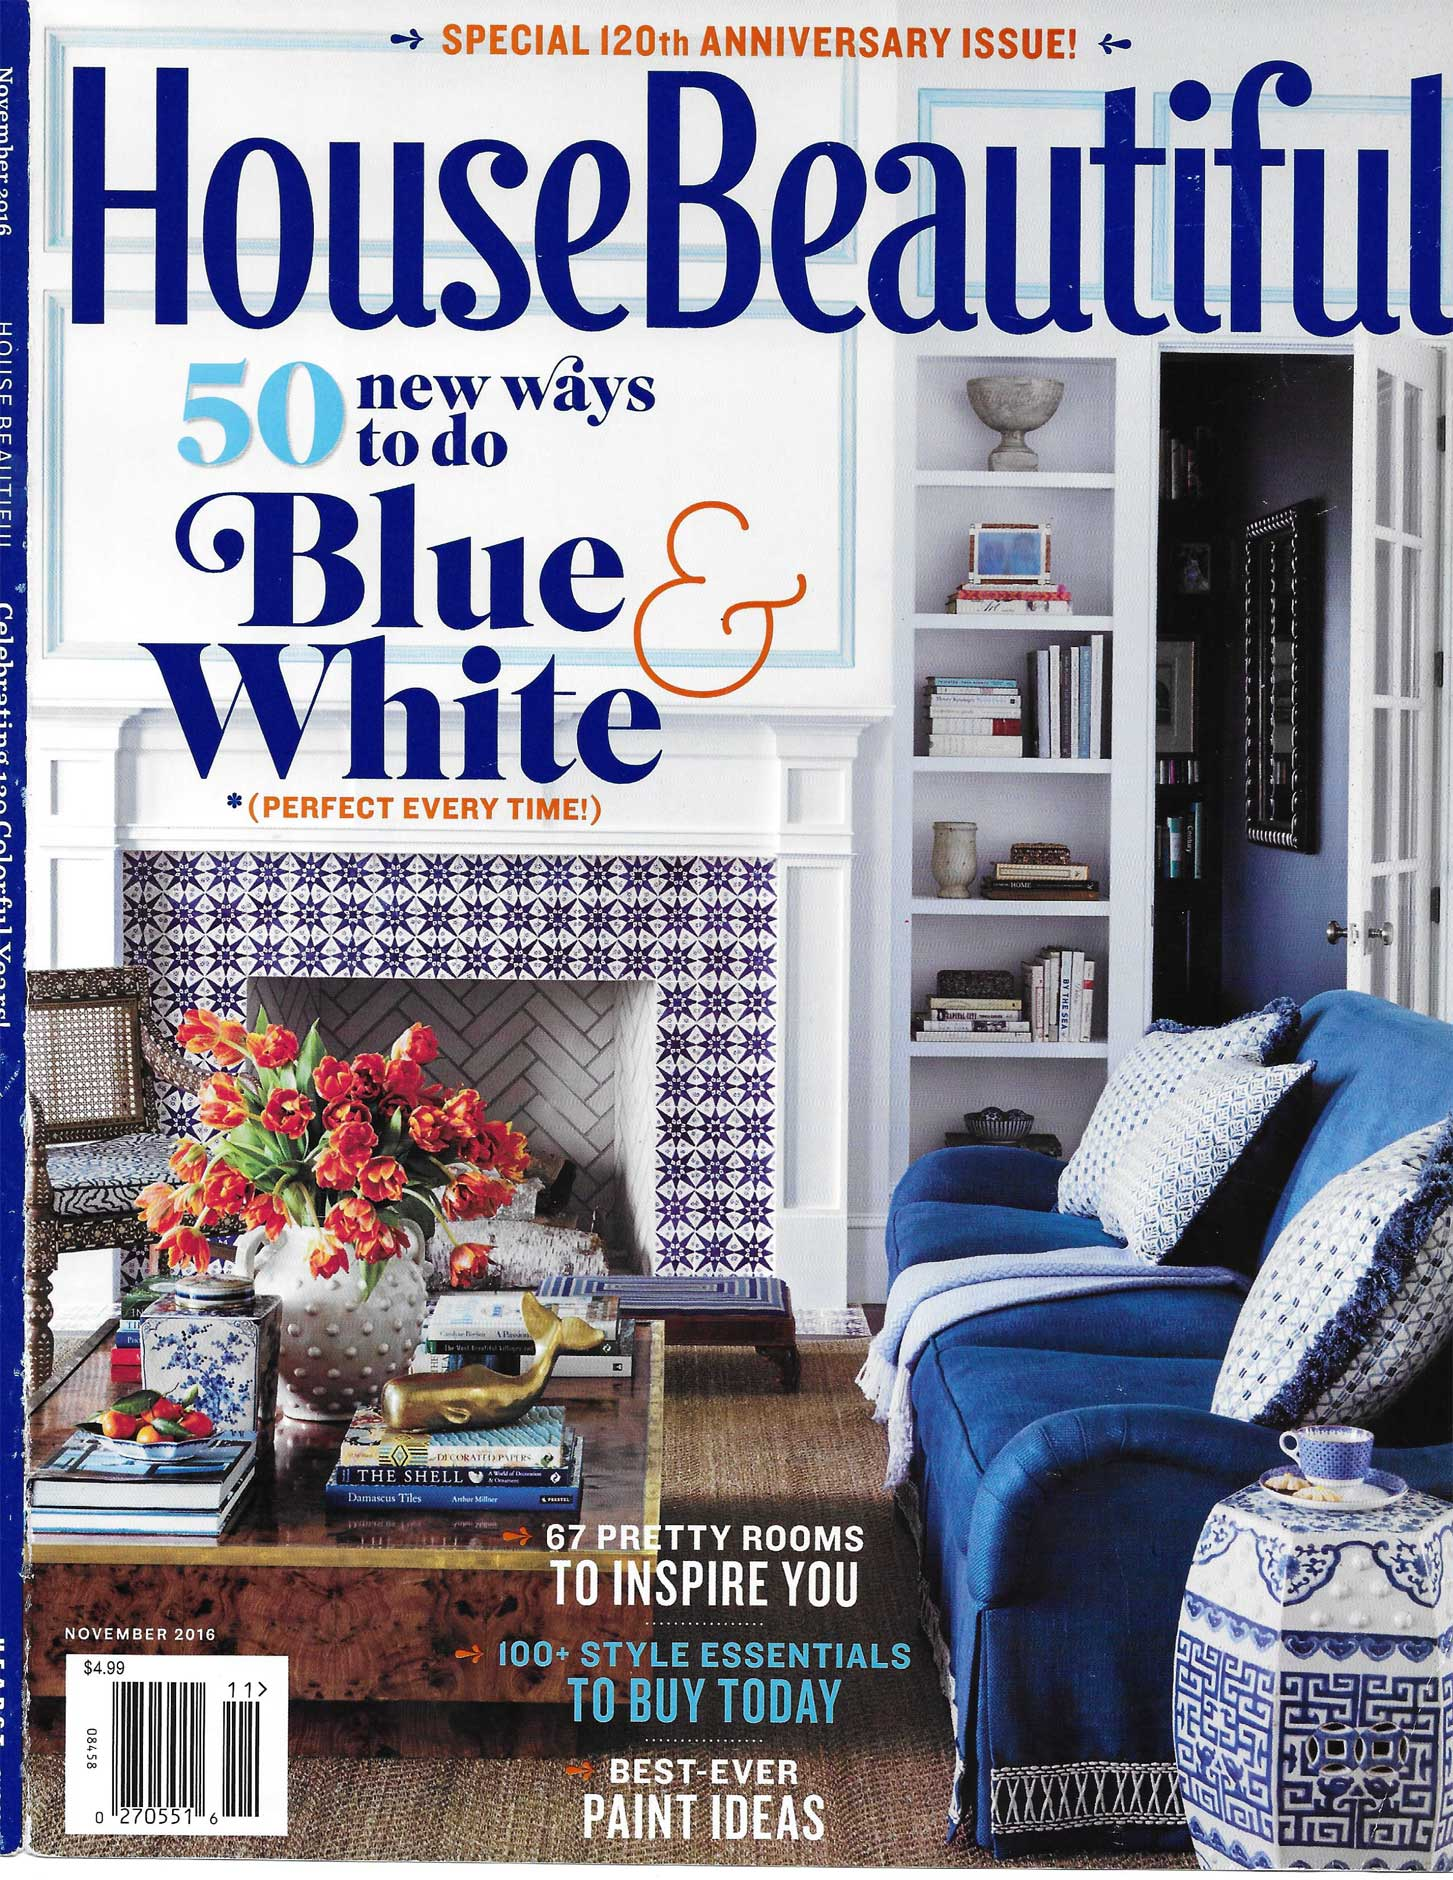 House Beautiful, November 2016, 1 of 1